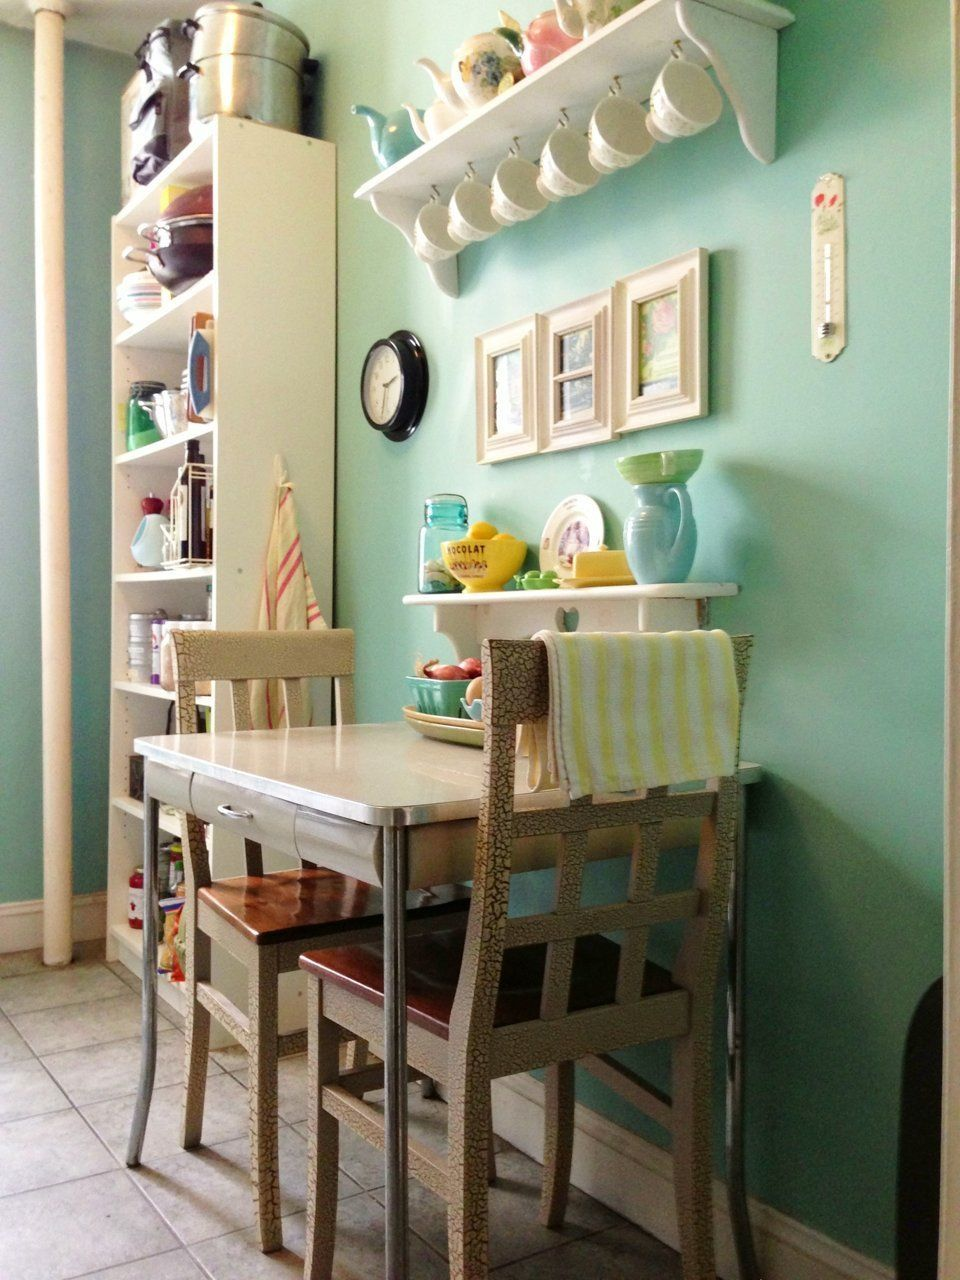 No Dining Room No Problem In This Sweet Apartment Eat In Kitchen Small Space Kitchen Small Spaces Home